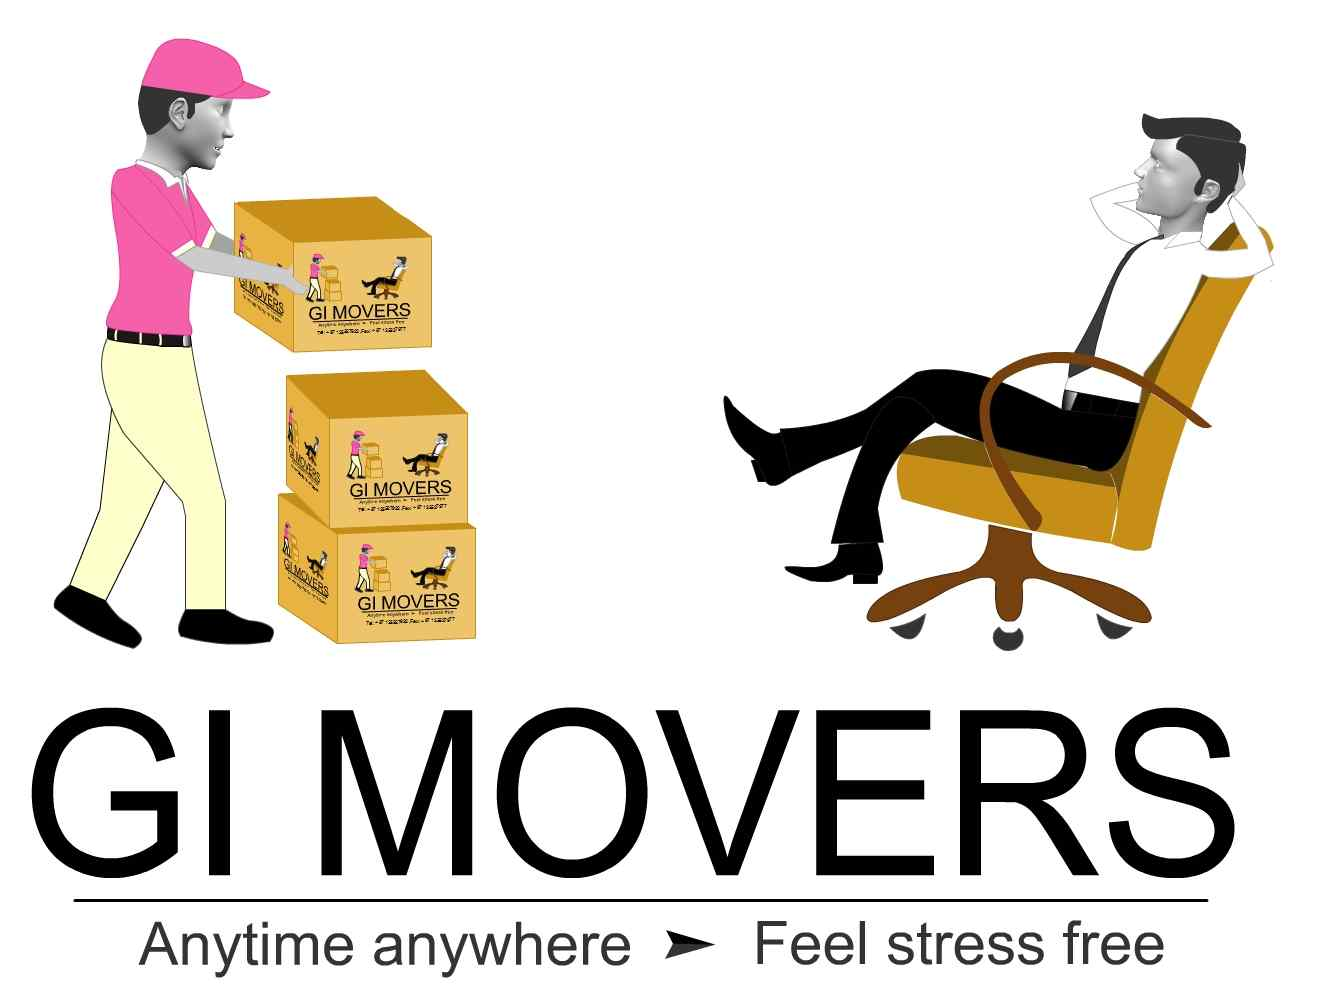 gimovers transparent logo